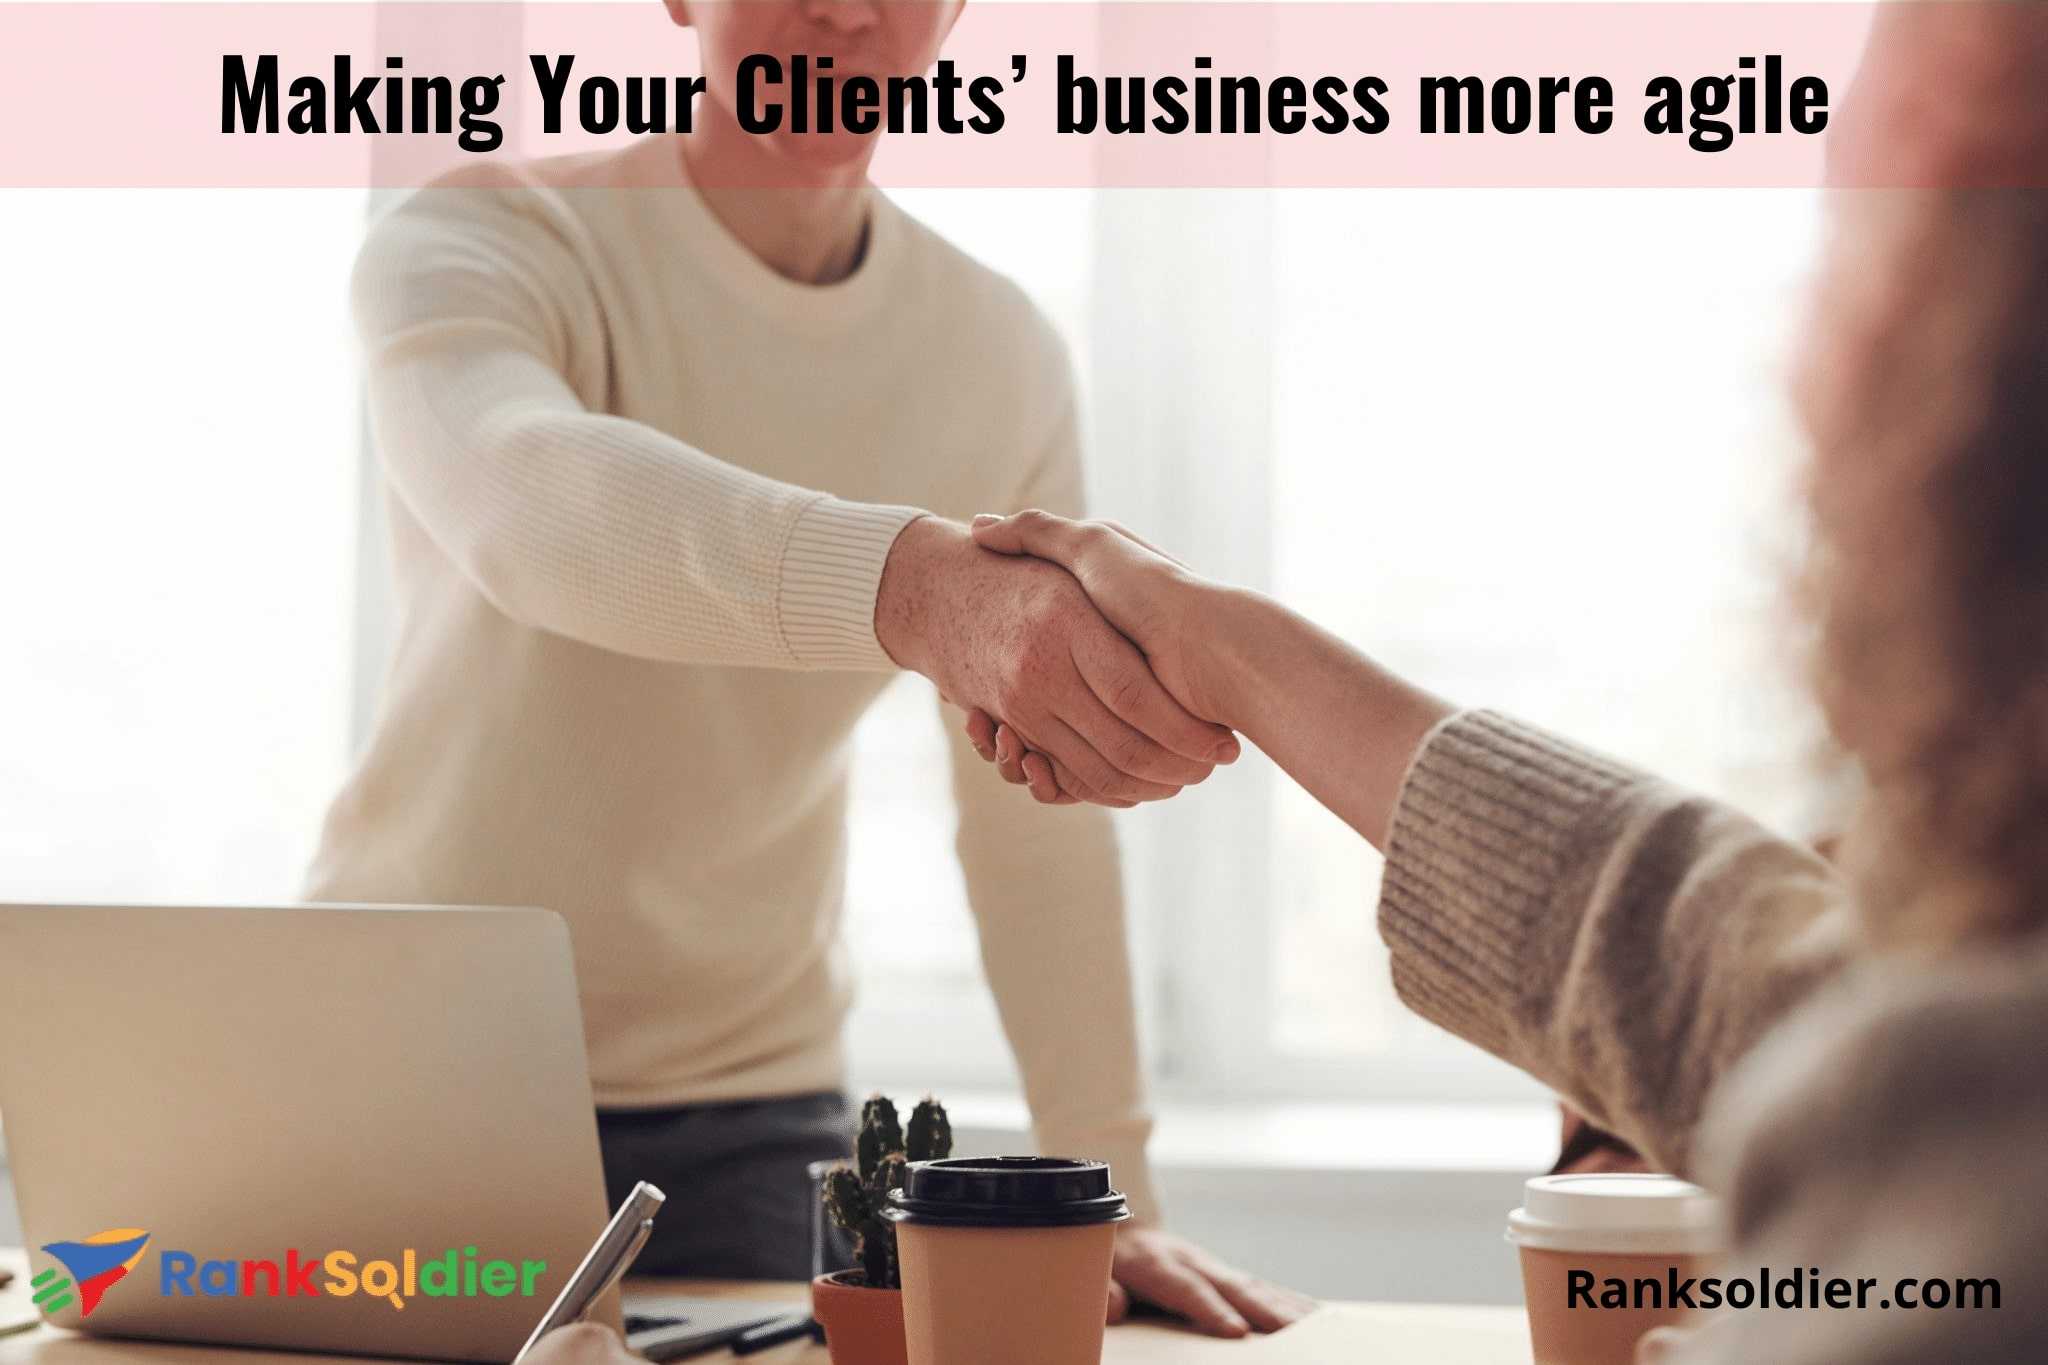 Making Your Clients' business more agile